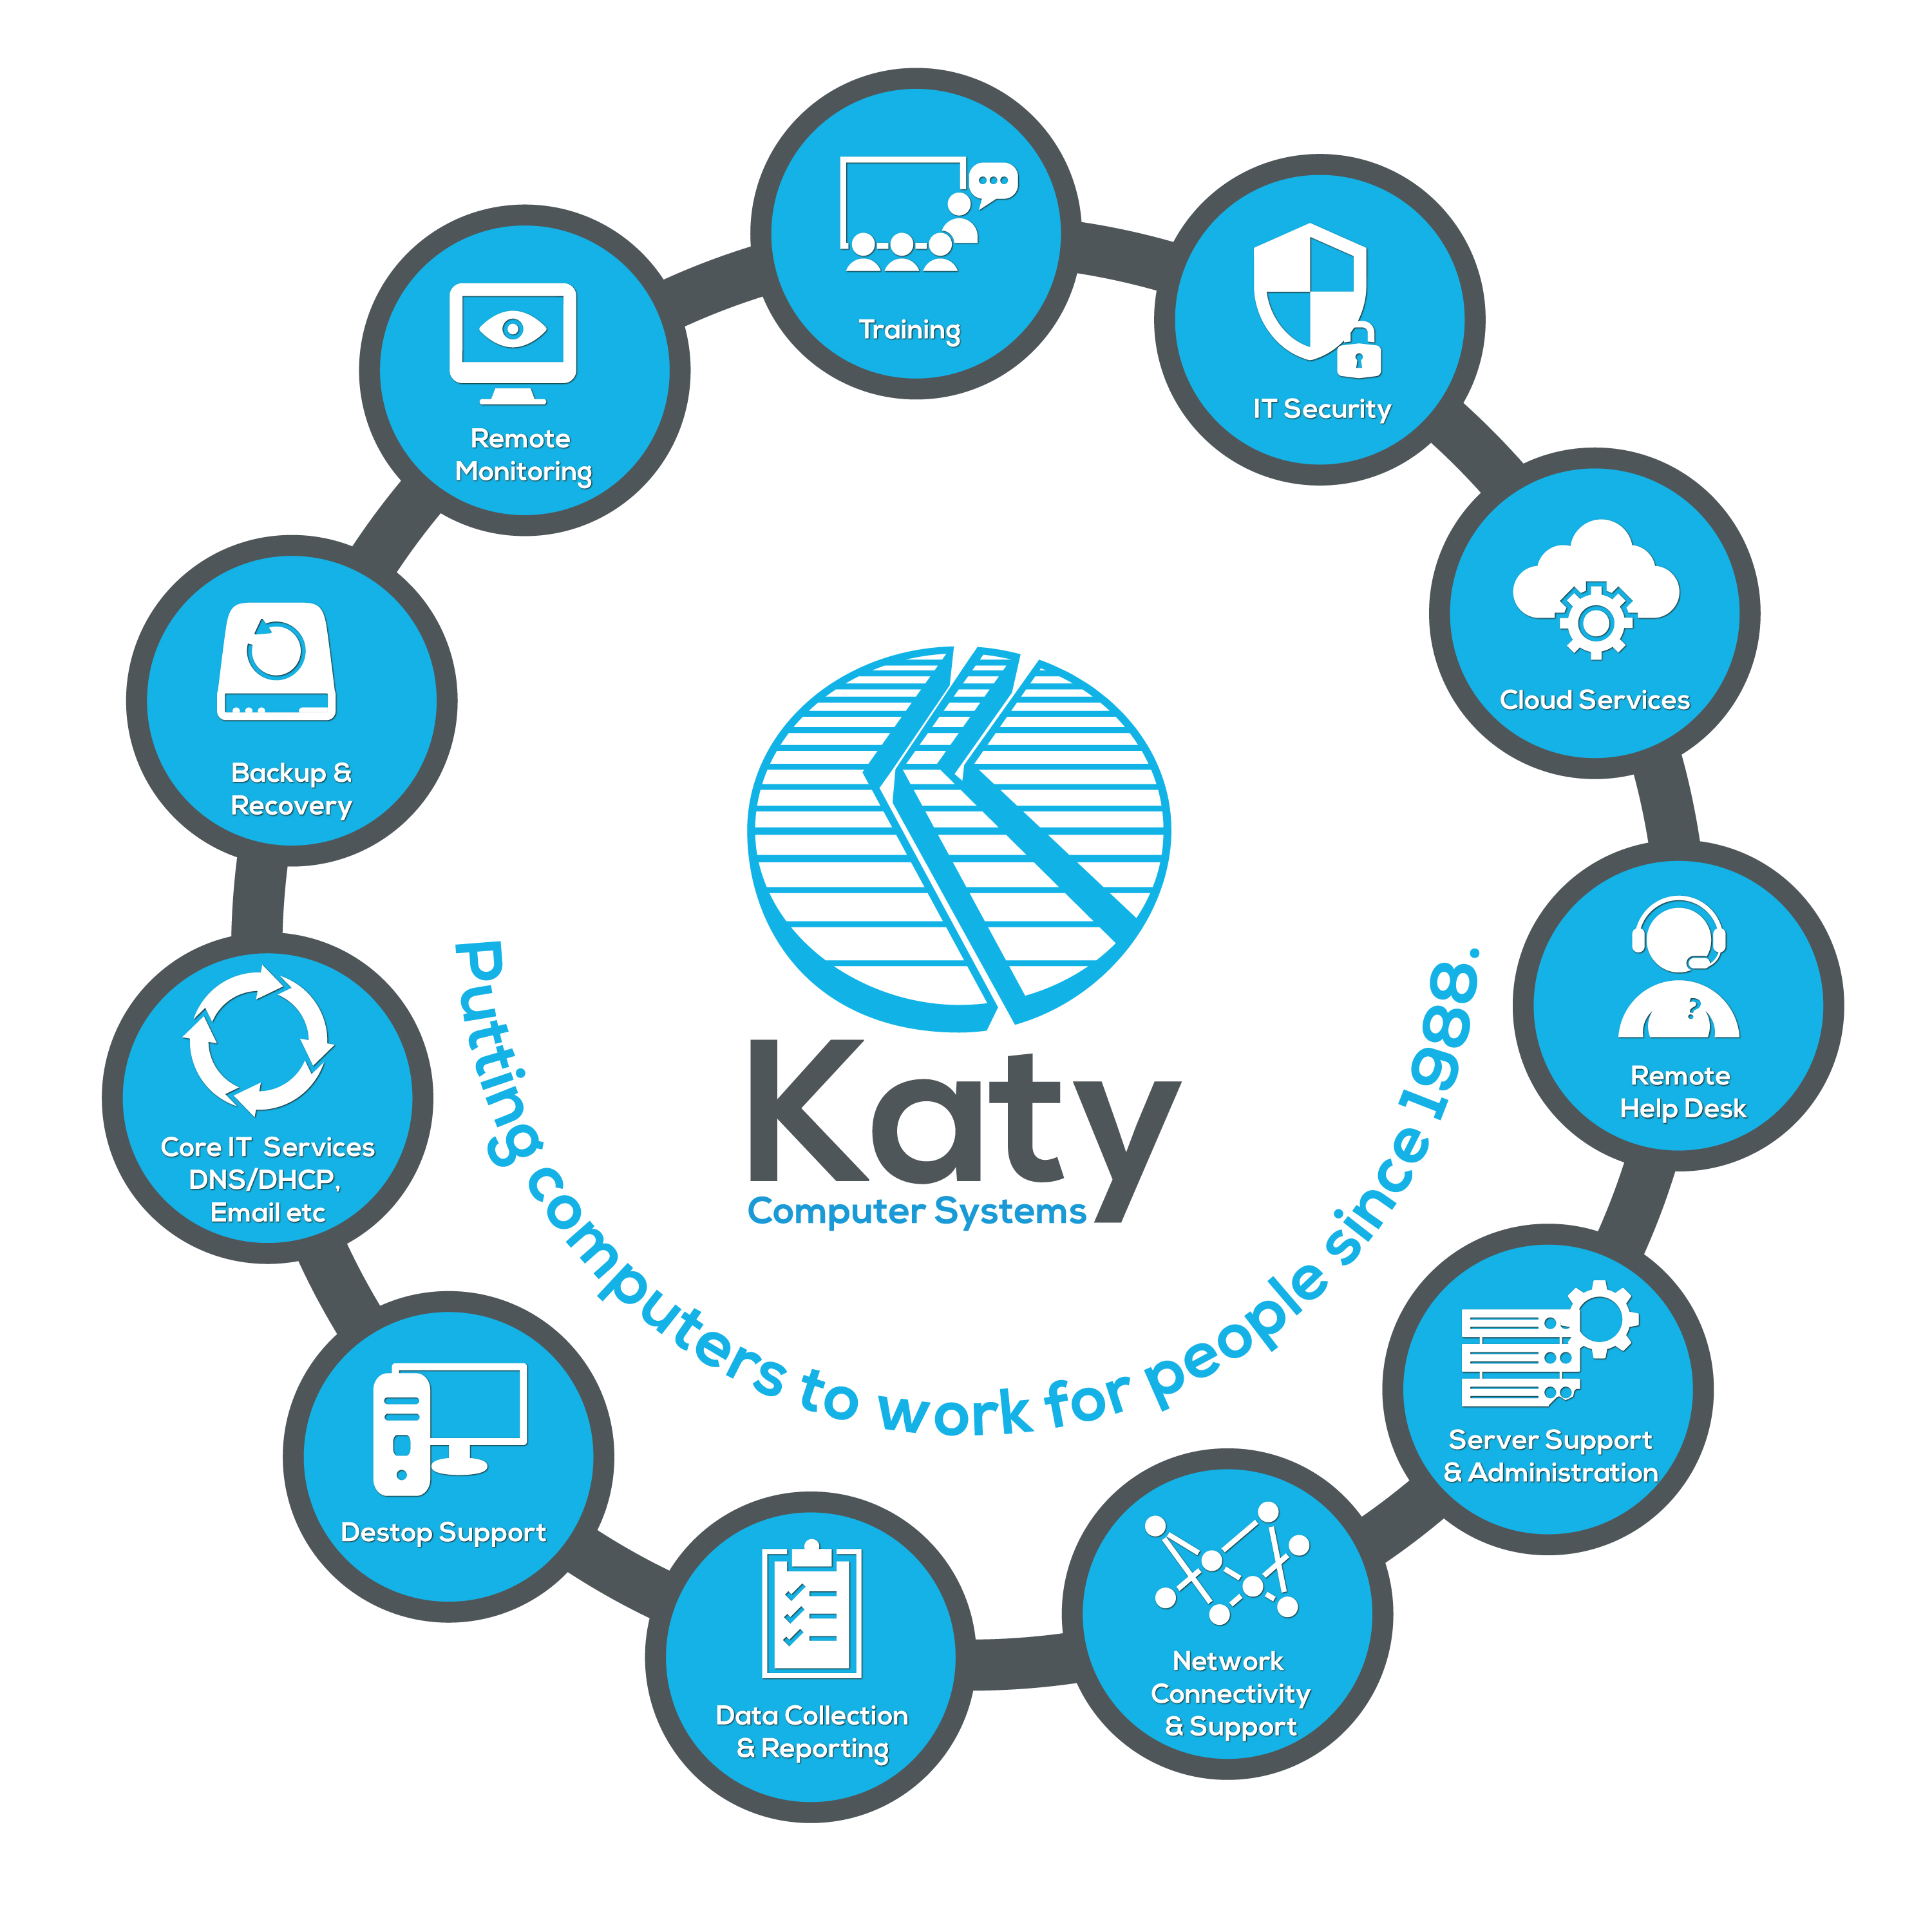 Professional Upmarket It Professional Vector Design For Katy Computer Systems By Jesskurian Design 24721513